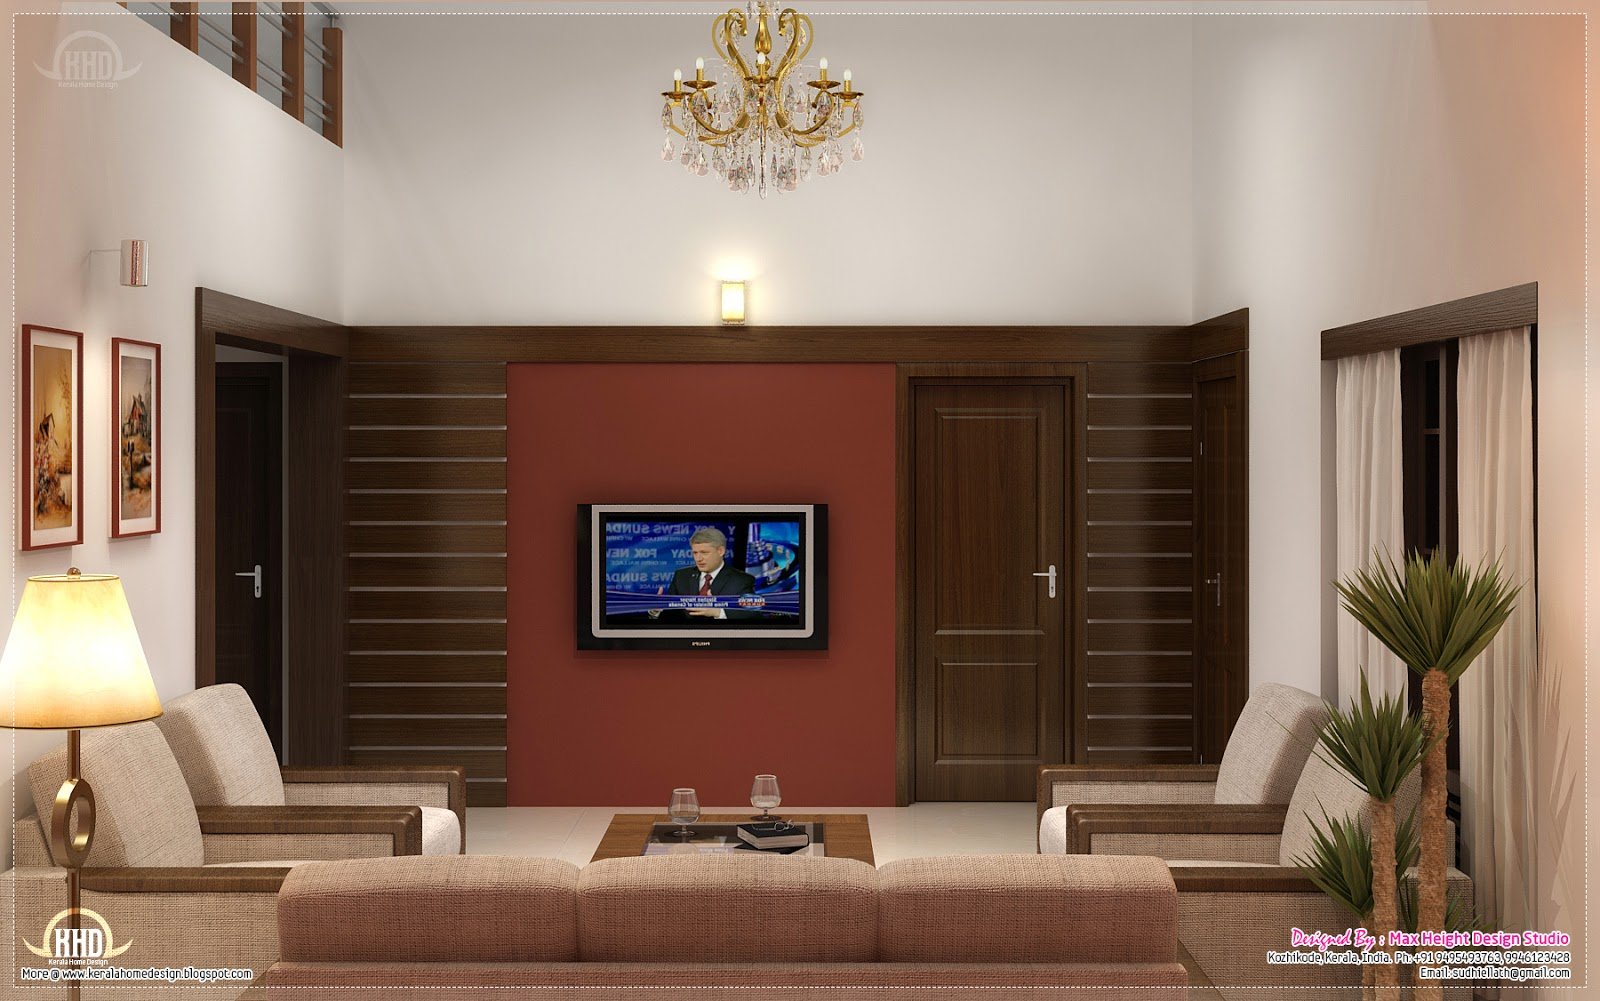 22 new kerala home design interior living room for Kerala house living room interior design